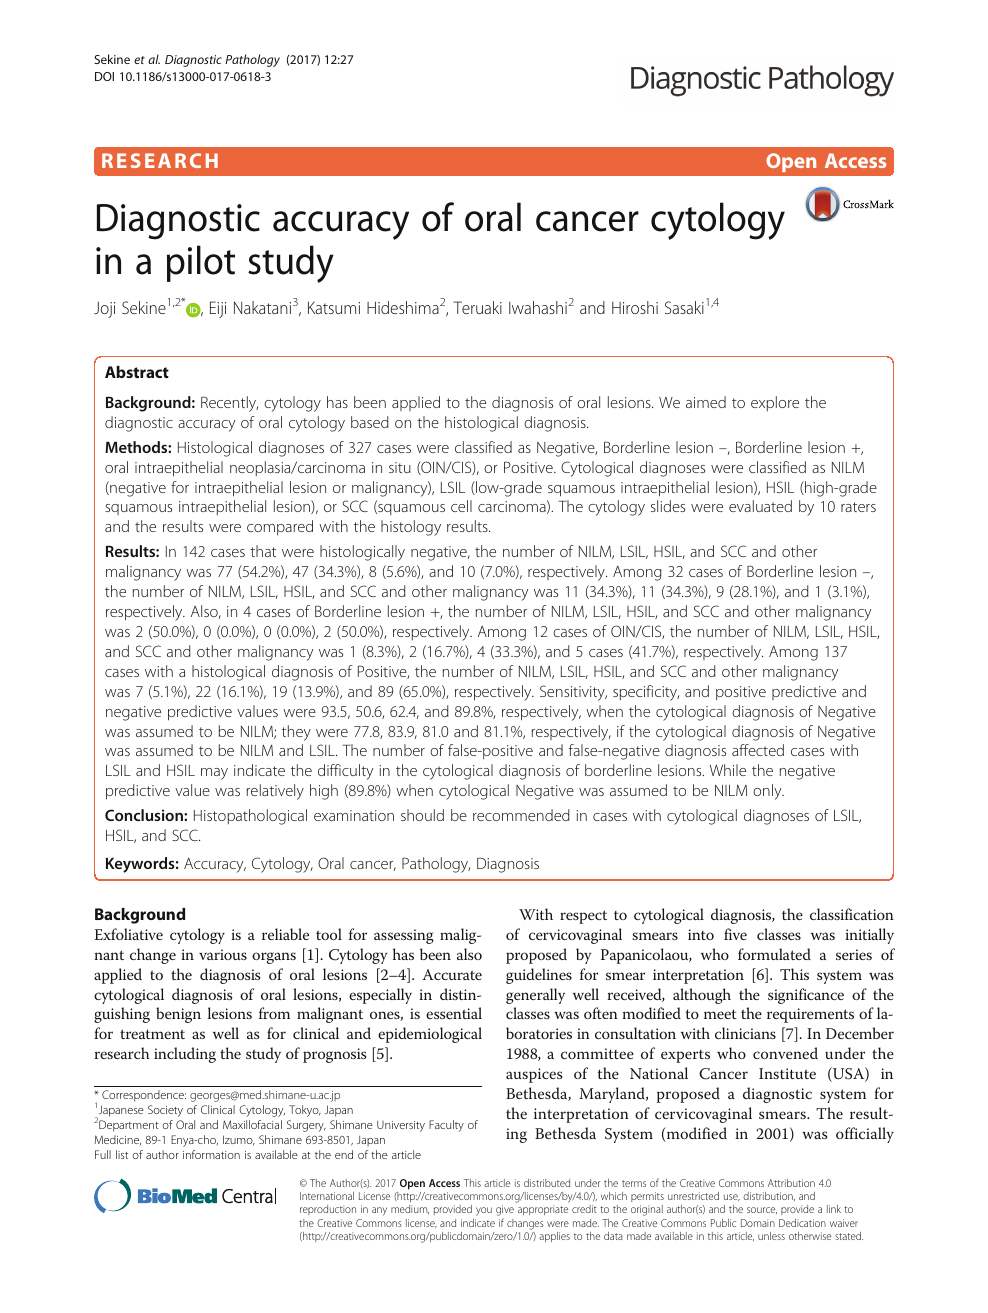 Diagnostic accuracy of oral cancer cytology in a pilot study